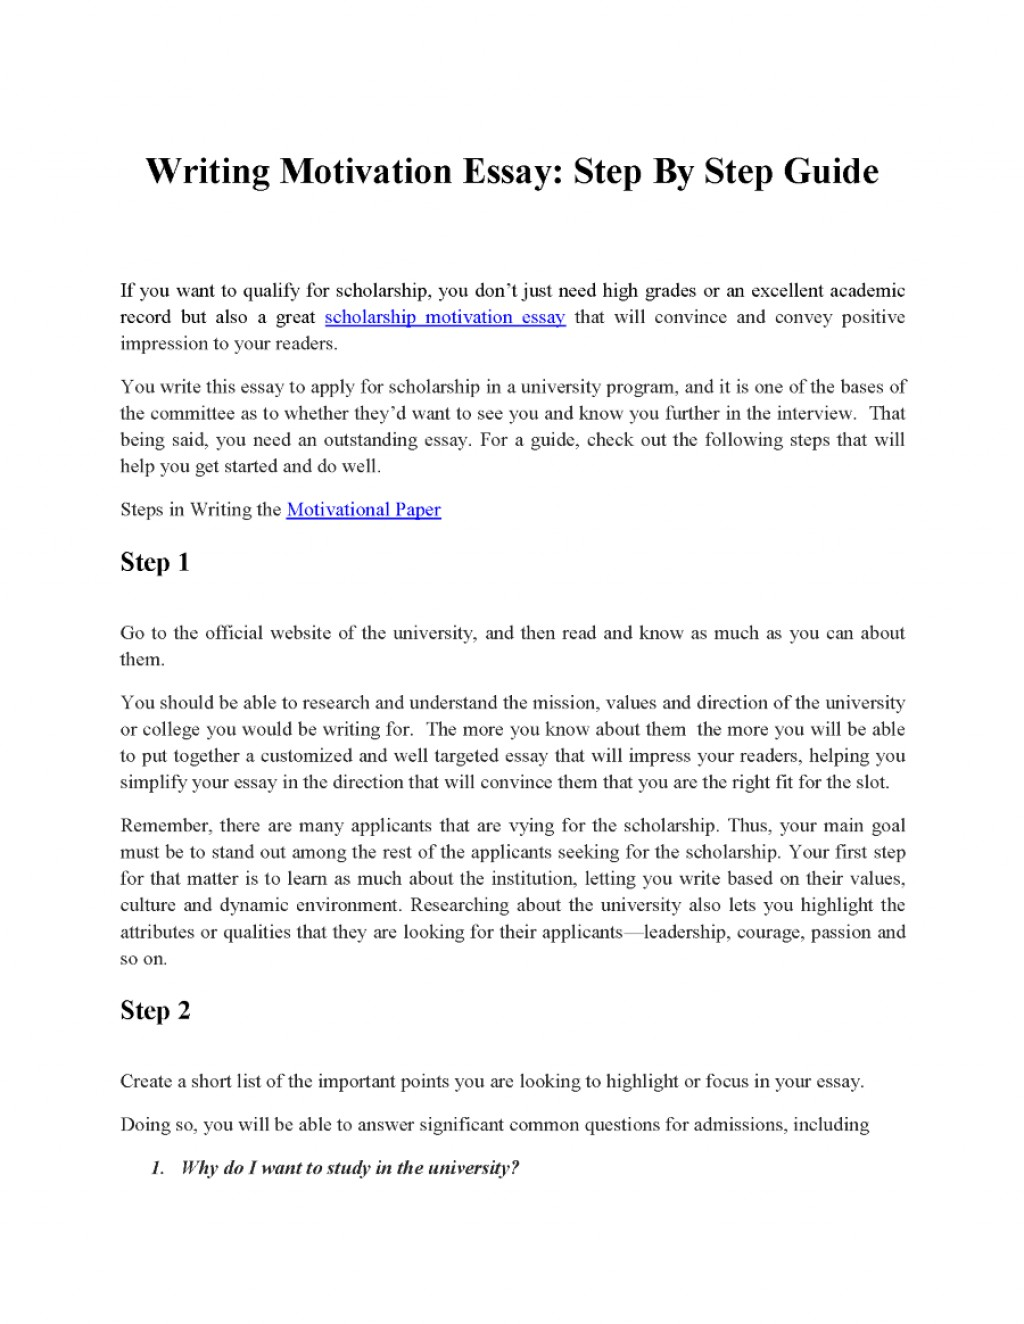 017 2948595 636128784141107500 Slide1 Fs Research Paper Steps To Write Unbelievable 10 A Basic Writing Ppt How Pdf Large